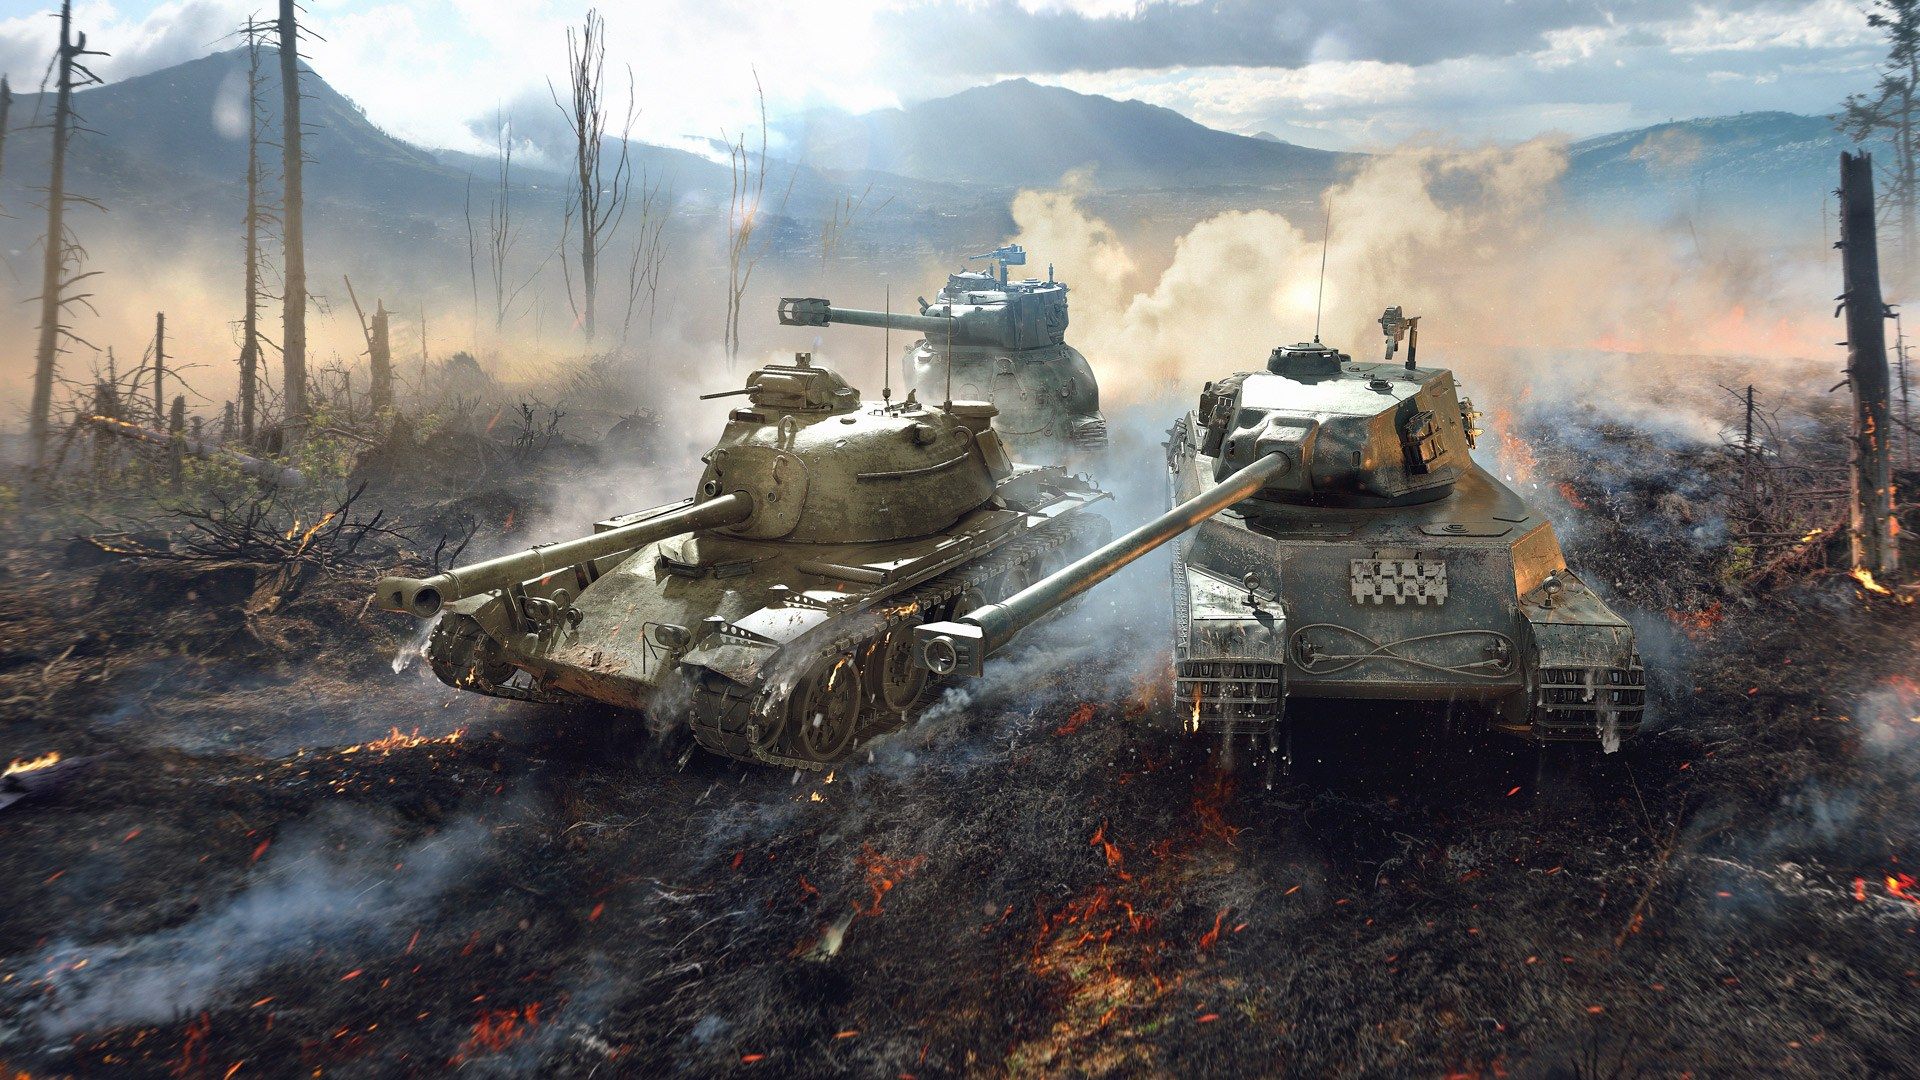 World of Tanks announces collaboration with G.I Joe